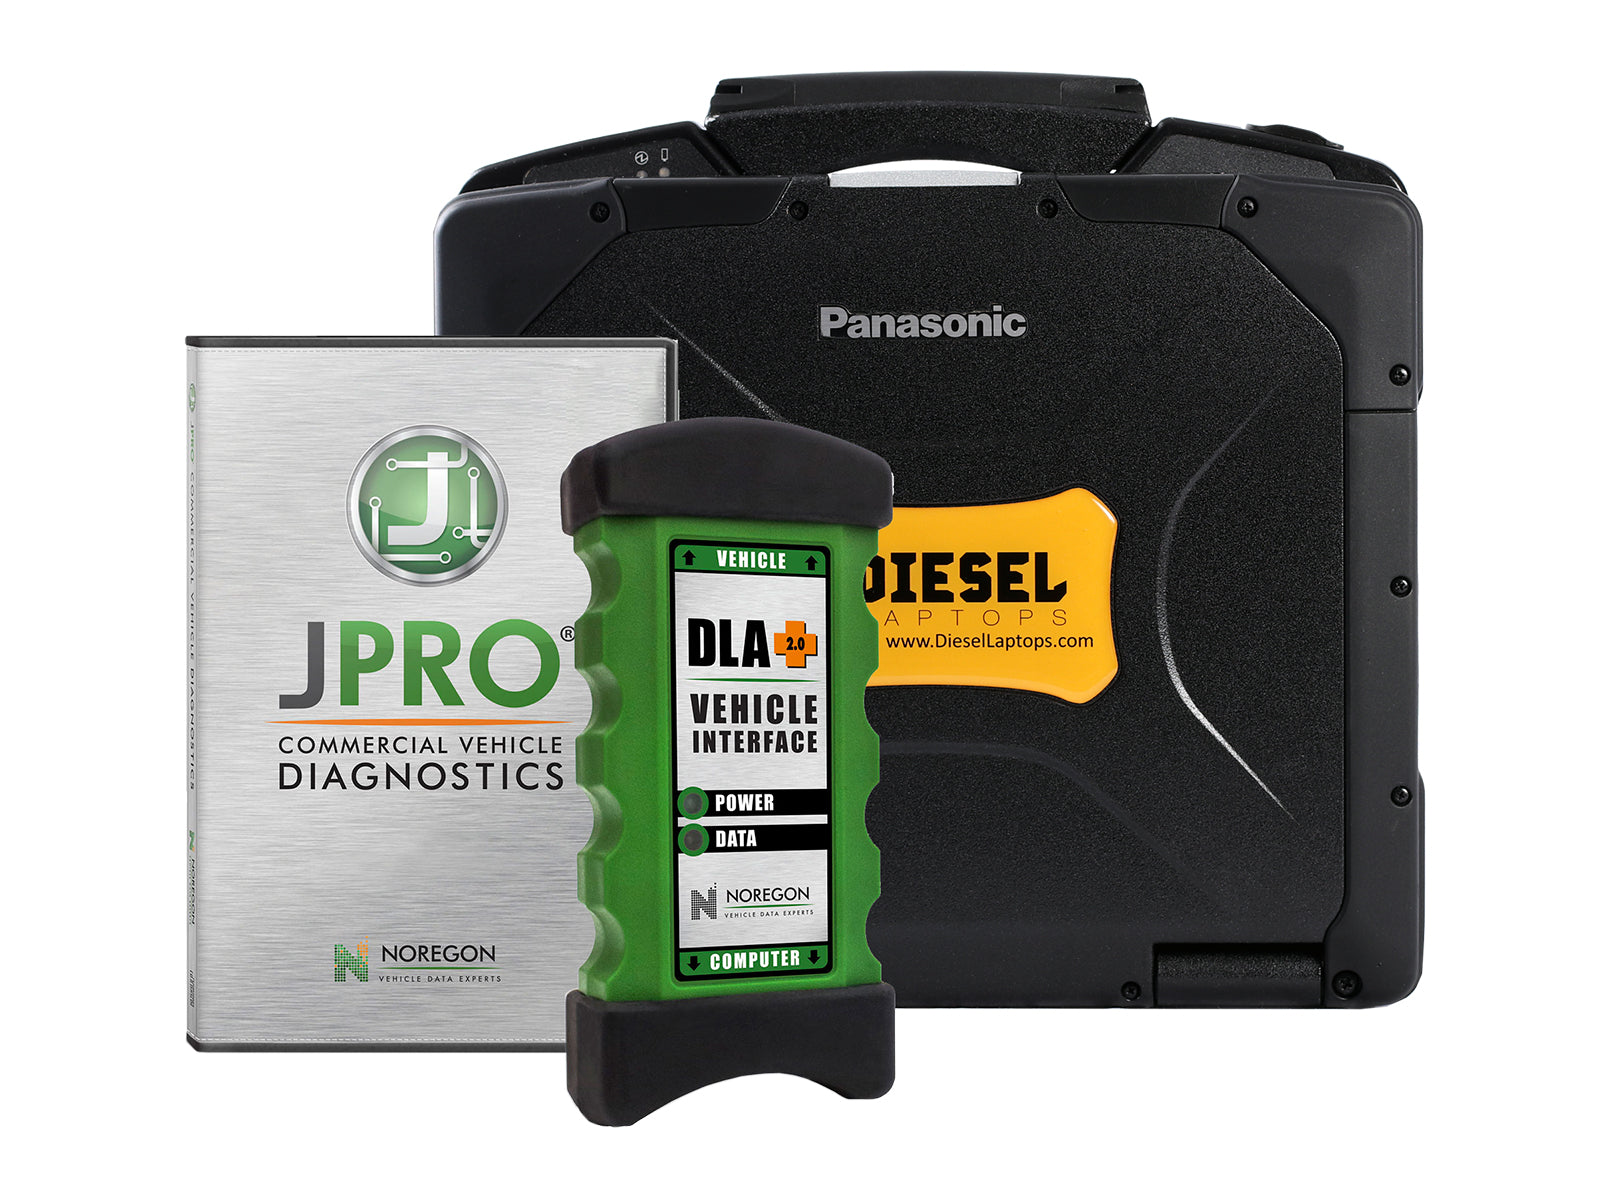 JPRO Heavy Truck Diagnostic Scanner Tool with Repair Information